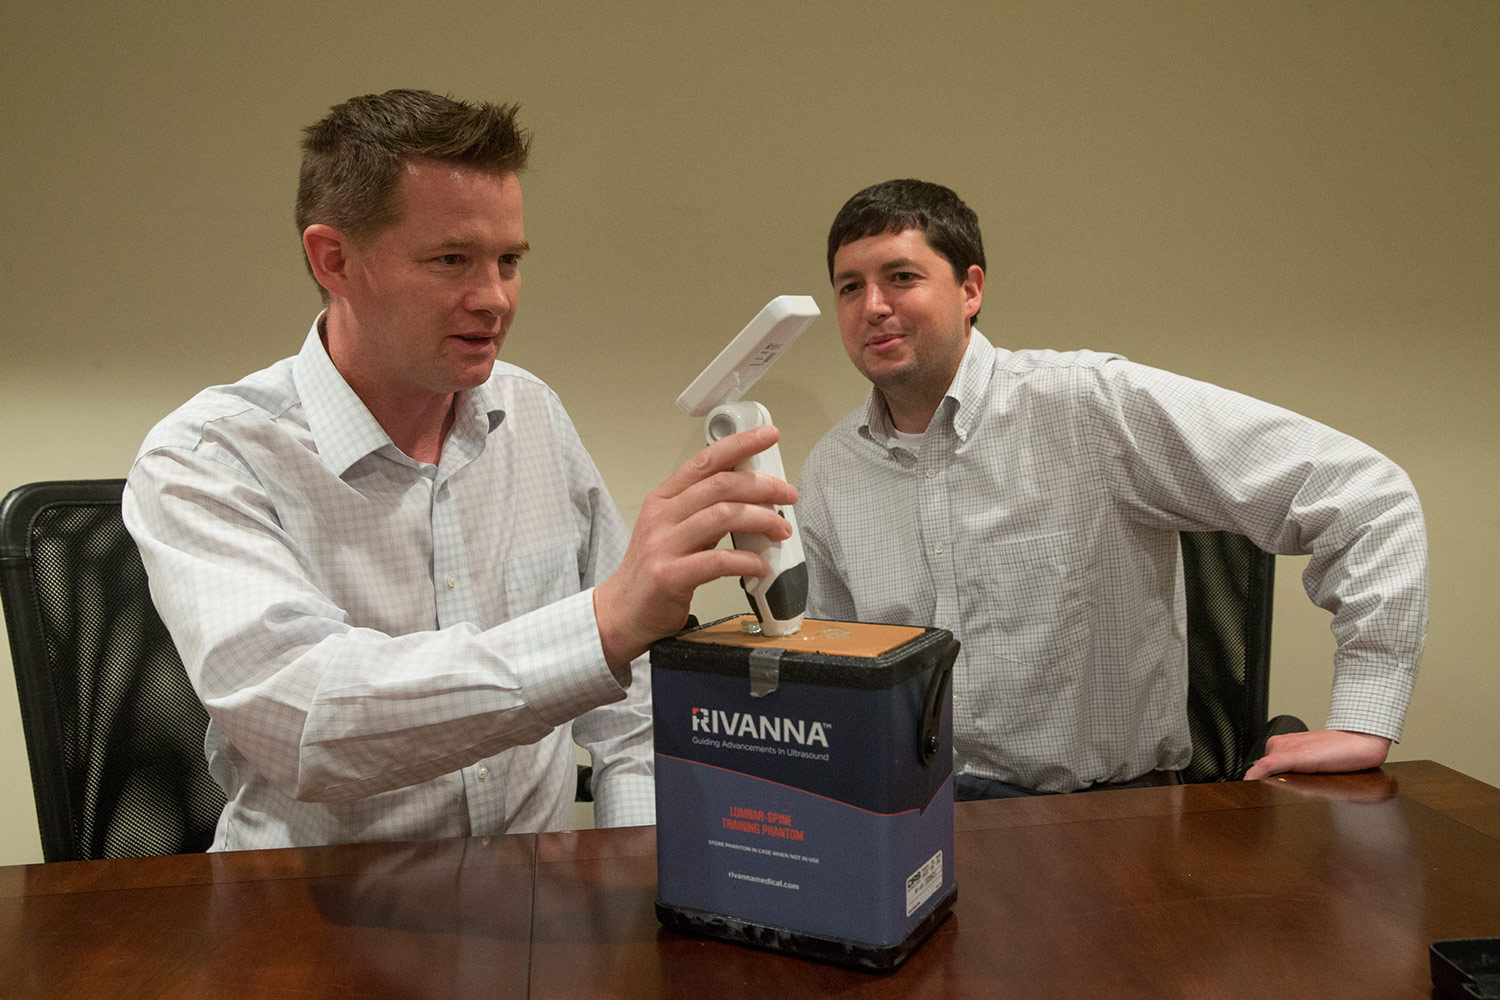 Kevin Owen (left) demonstrates the Accuro device's spine-finding capabilities through layers of synthetic skin while his co-founder Will Mauldin looks on.